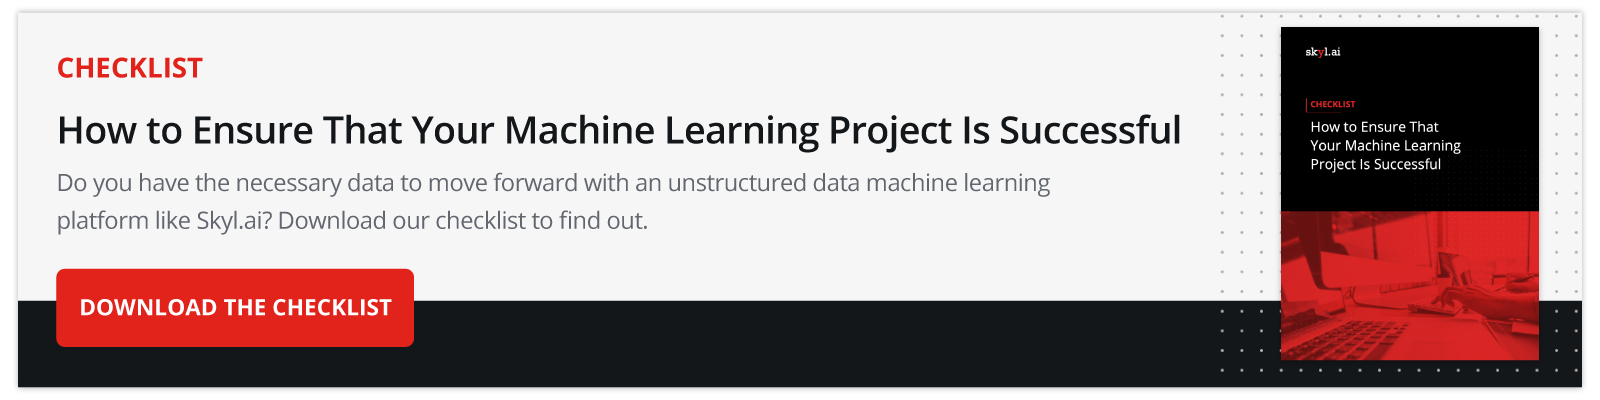 how-to-ensure-that-your-machine-learning-project-is-successful